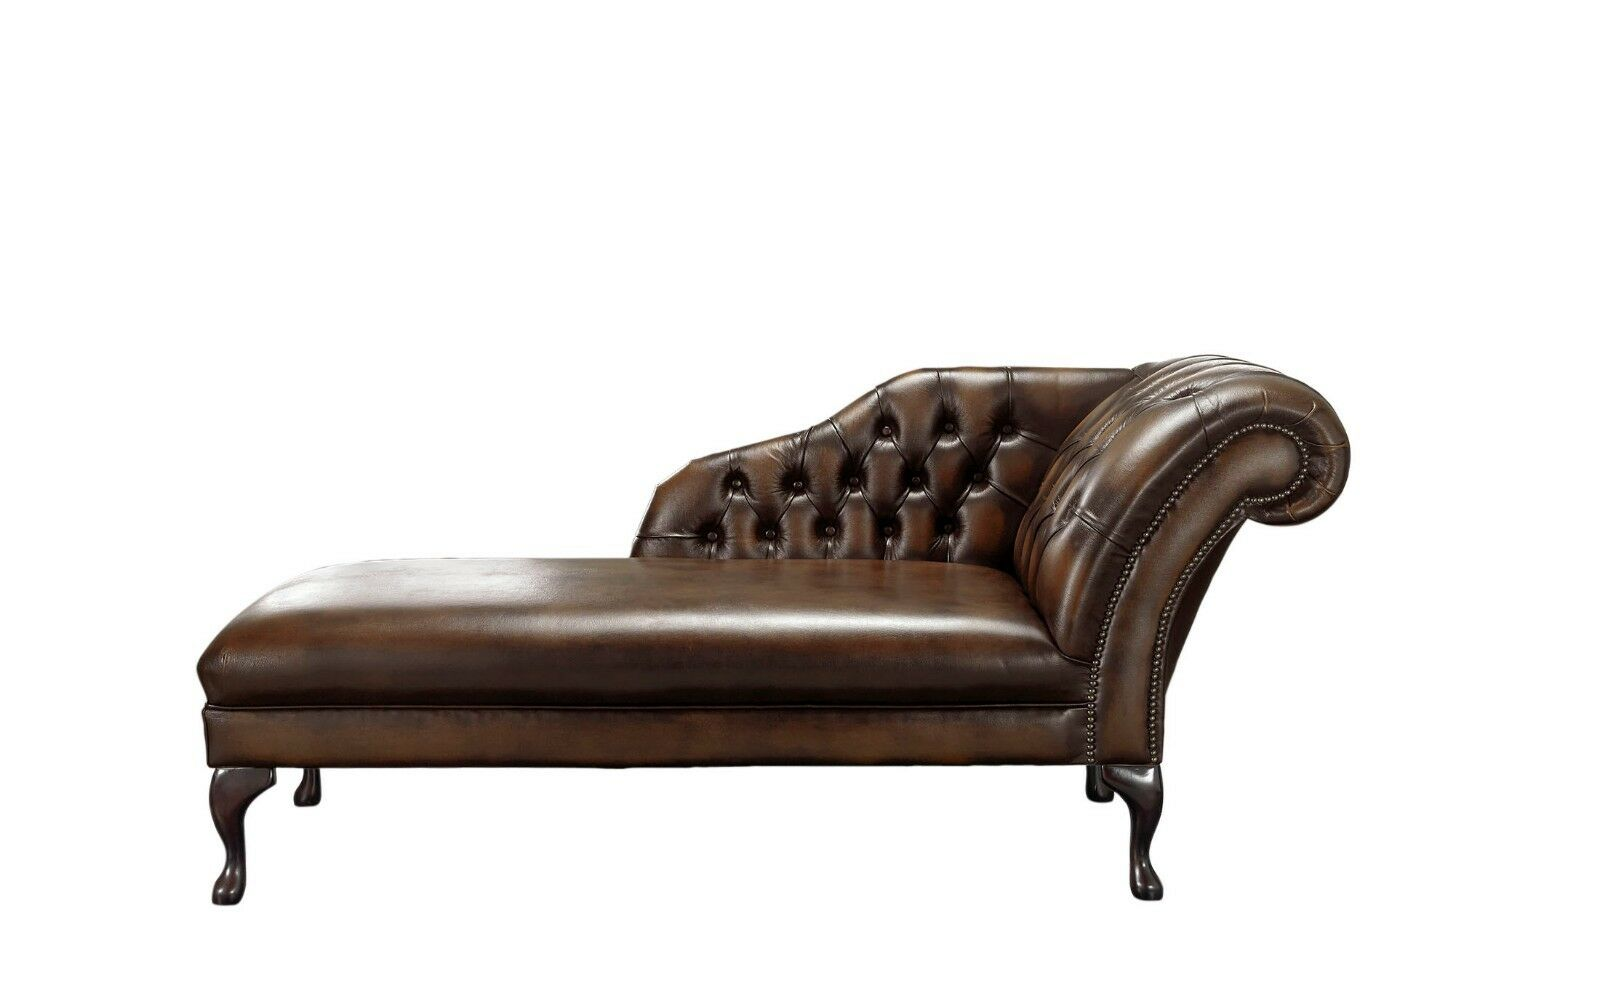 - Handmade Chesterfield Genuine Leather Chaise Lounge Day Bed